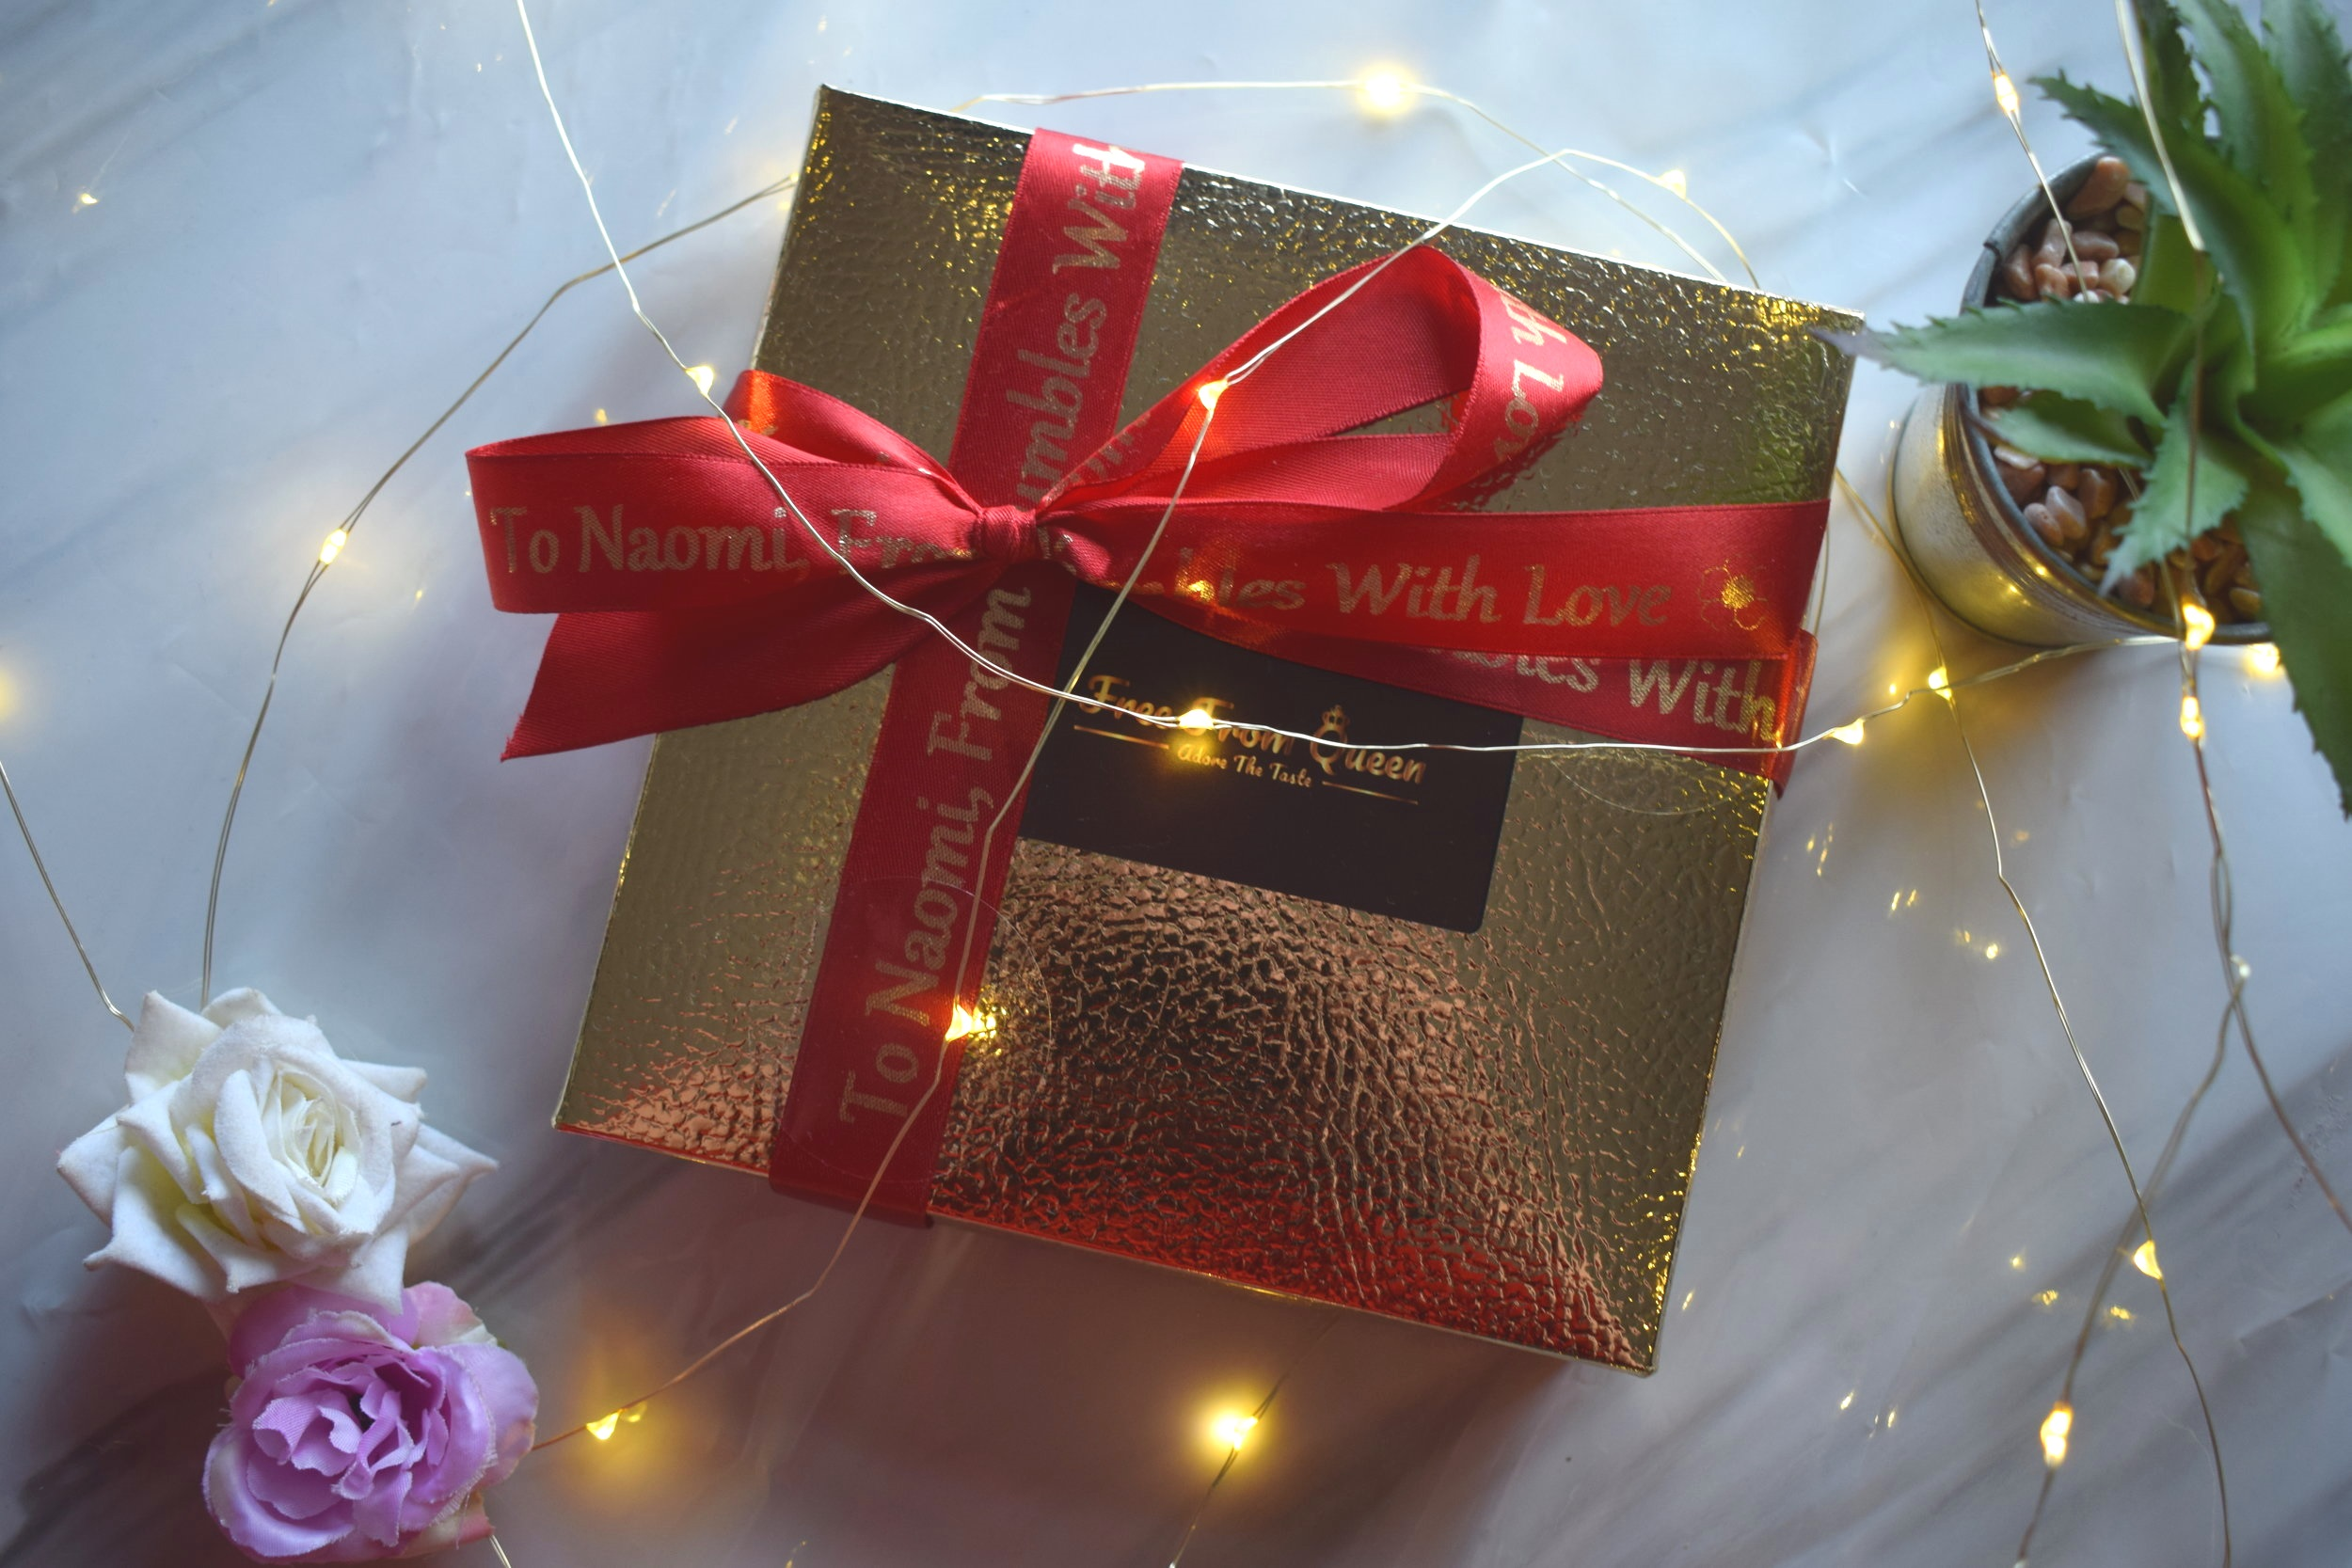 2019 Valentine's Day gifts Yumbles Vegan Free-From Gluten Soya Chocolates